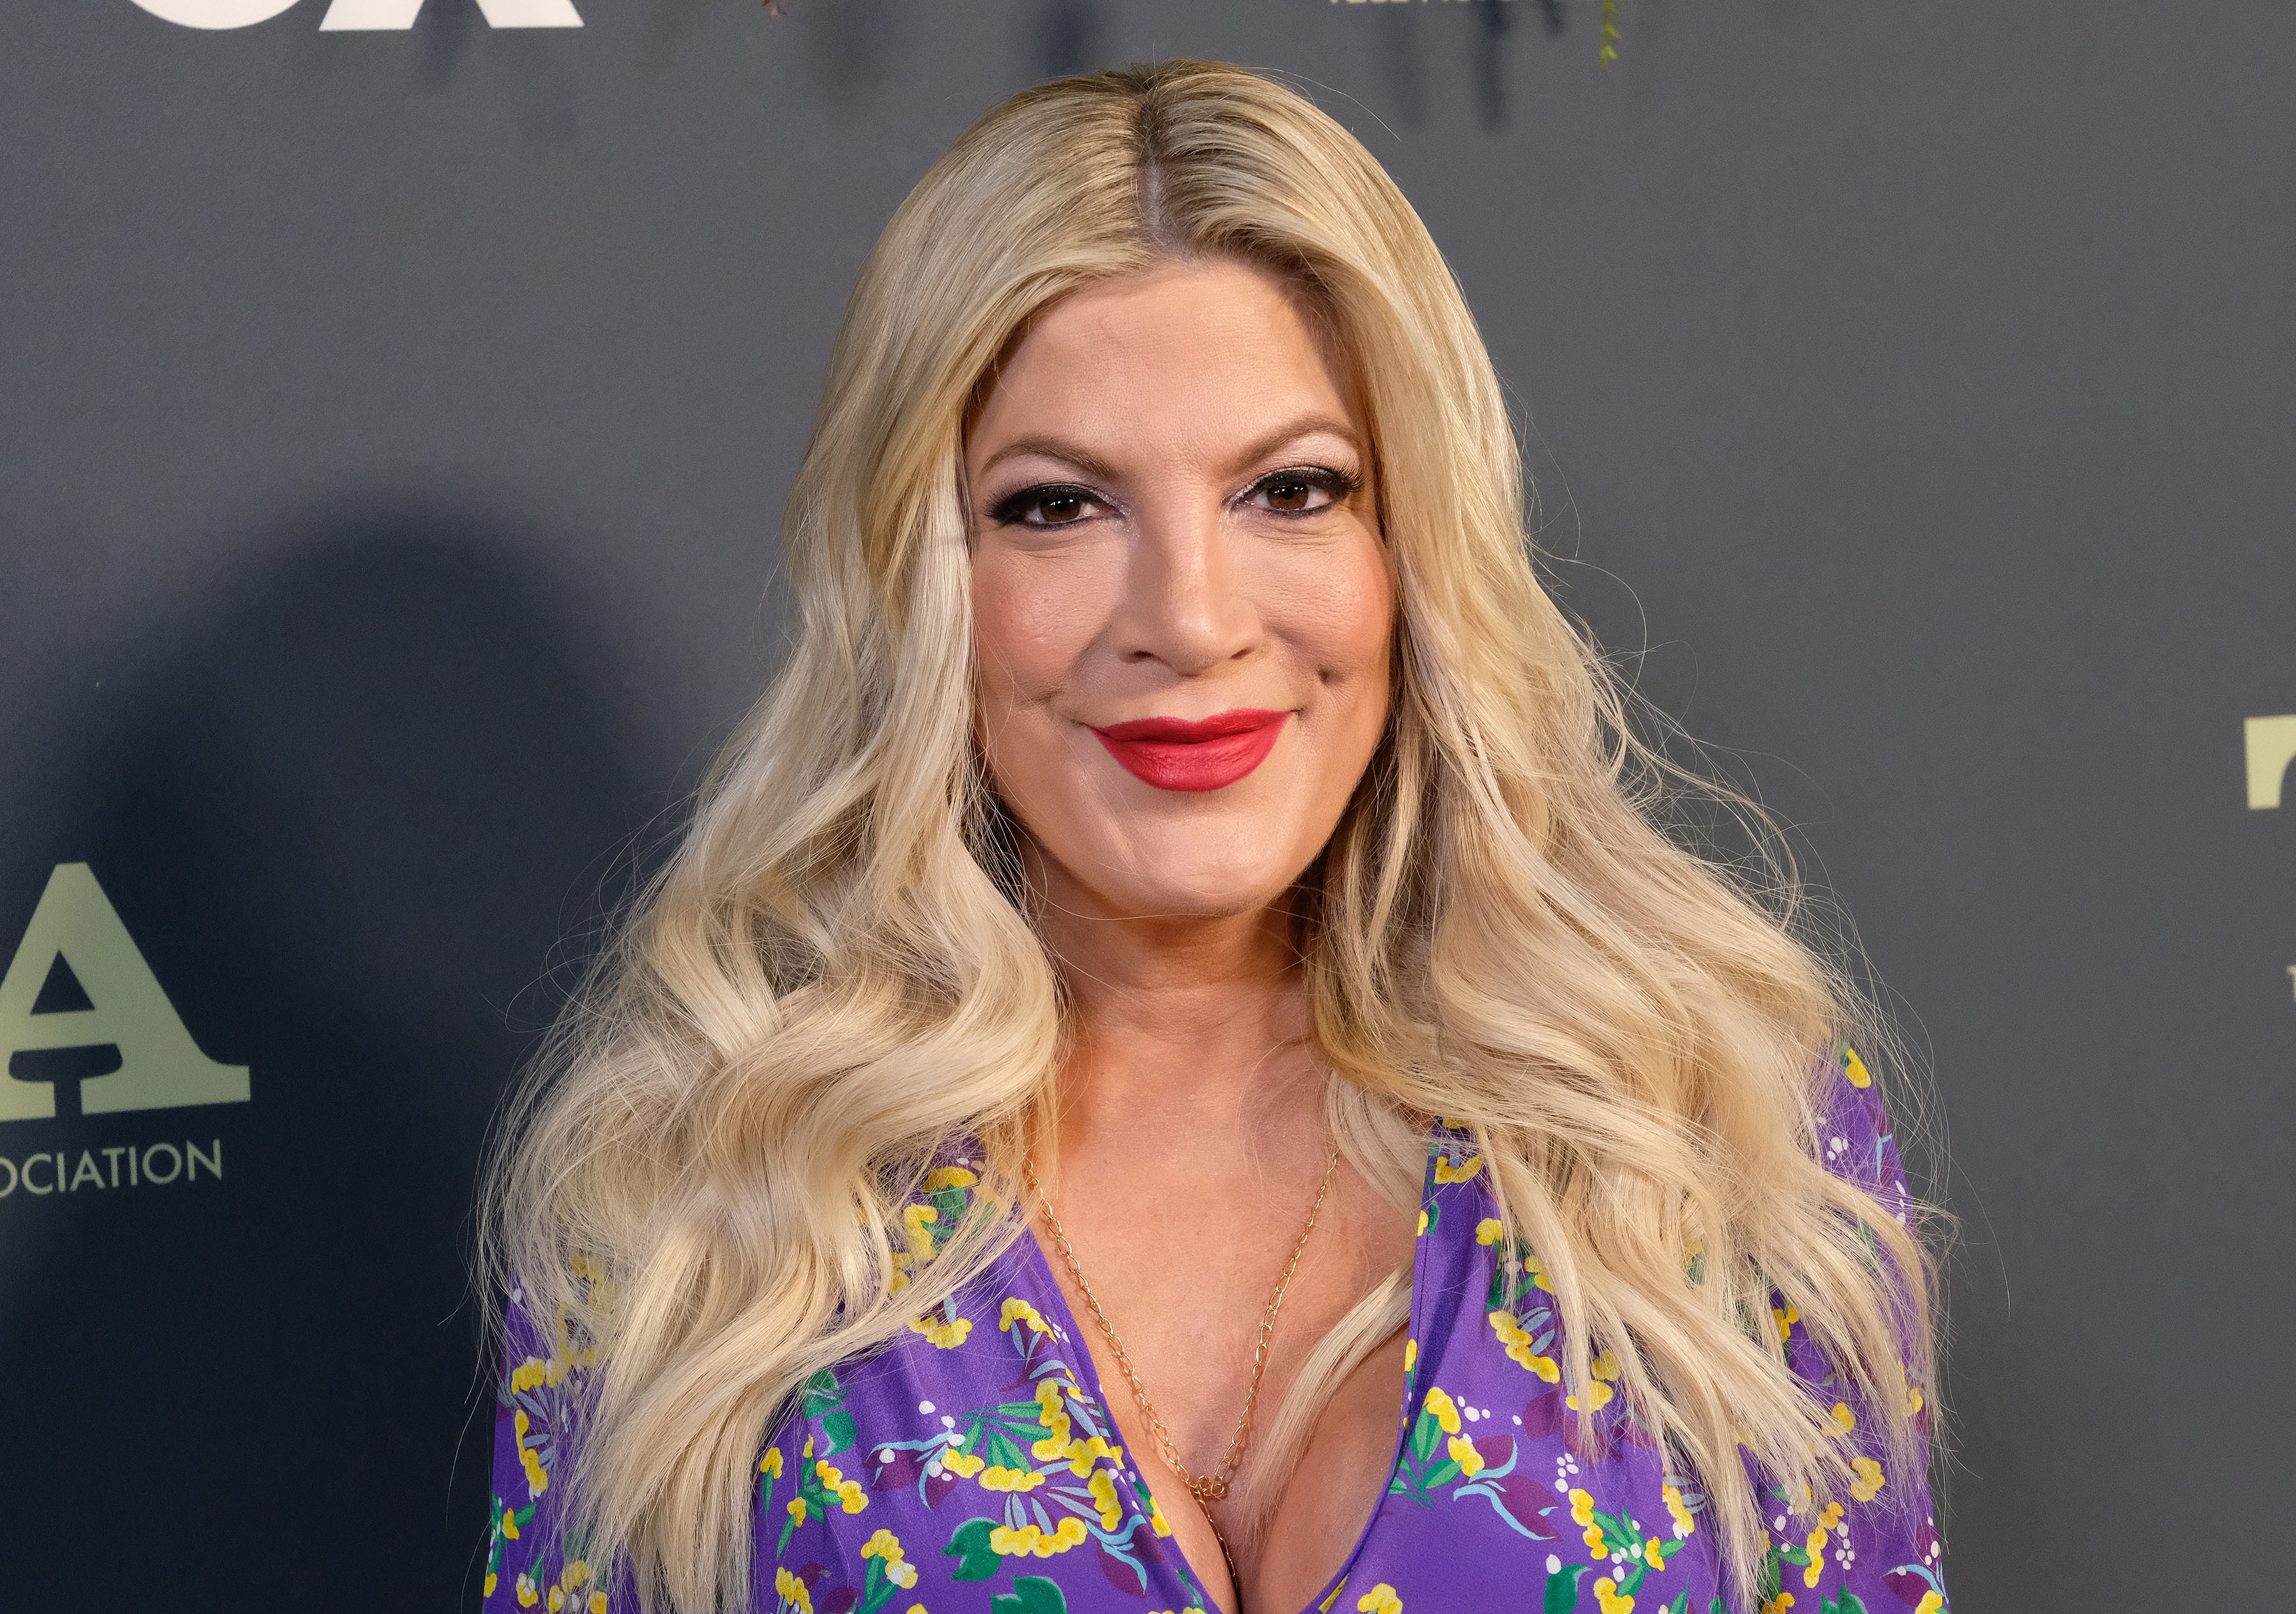 Tori Spelling attends the Fox Winter All Star Party as part of the TCA Winter Press Tour in Los Angeles on Feb. 6, 2019.